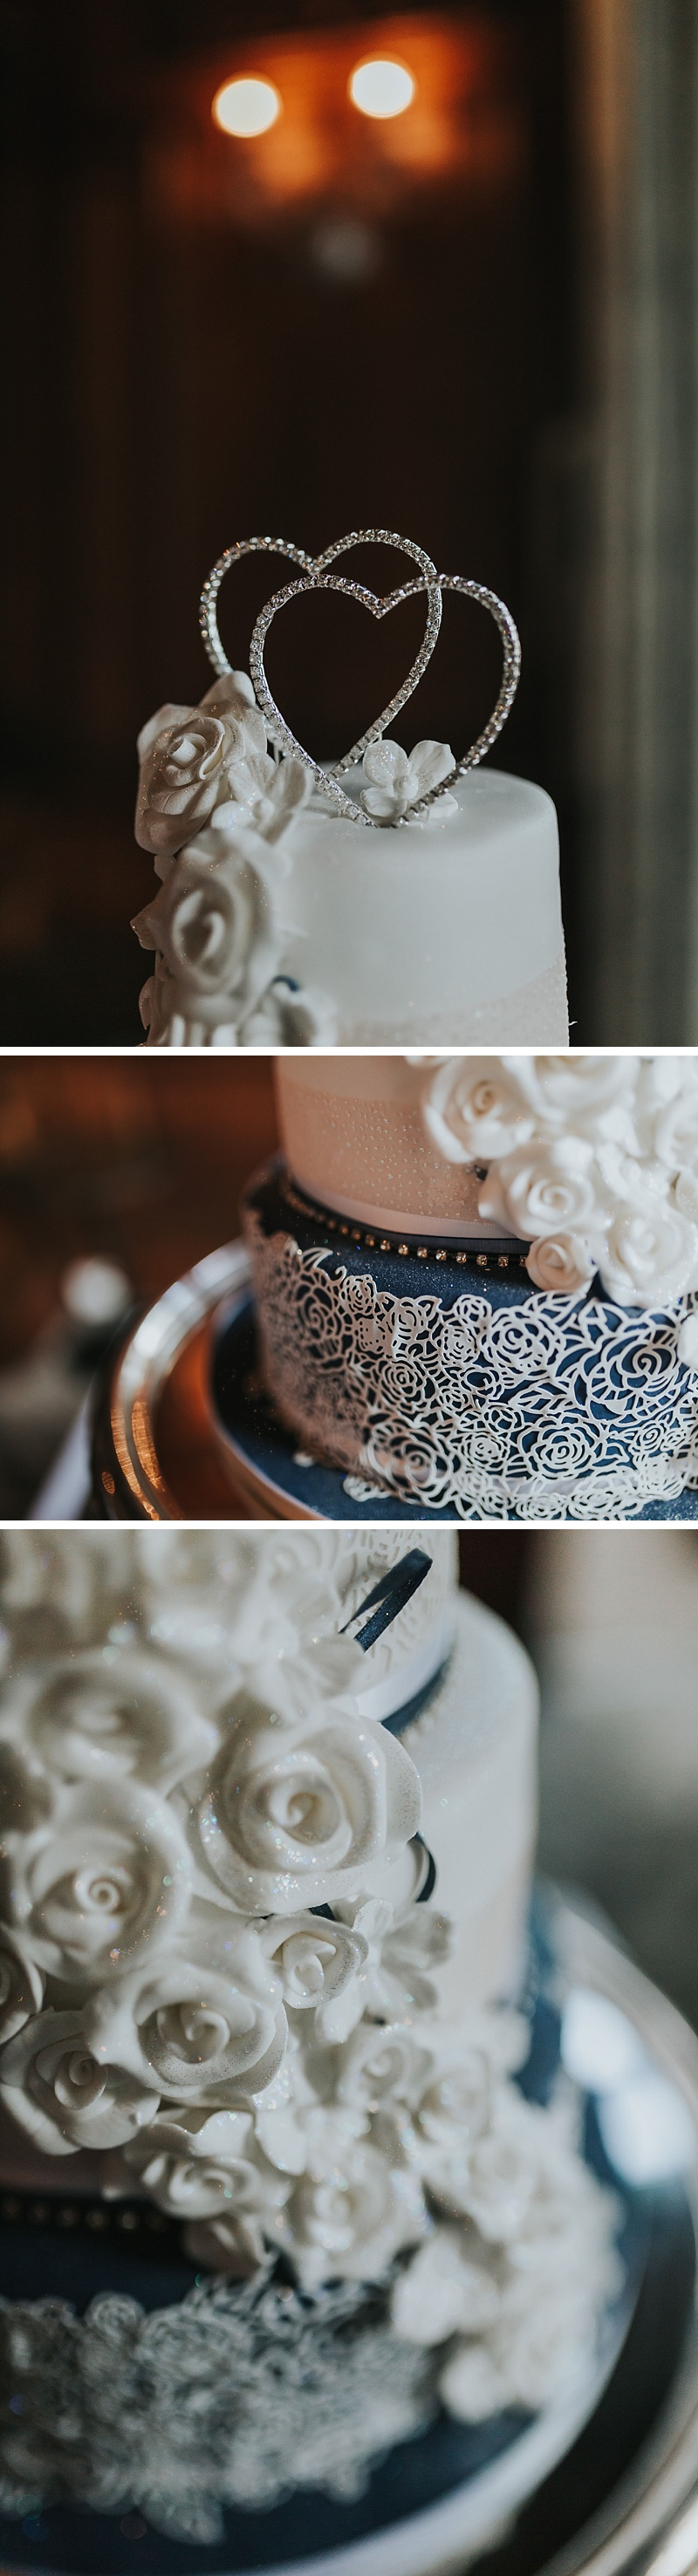 wedding cake details. Navy and white with a double heart topper